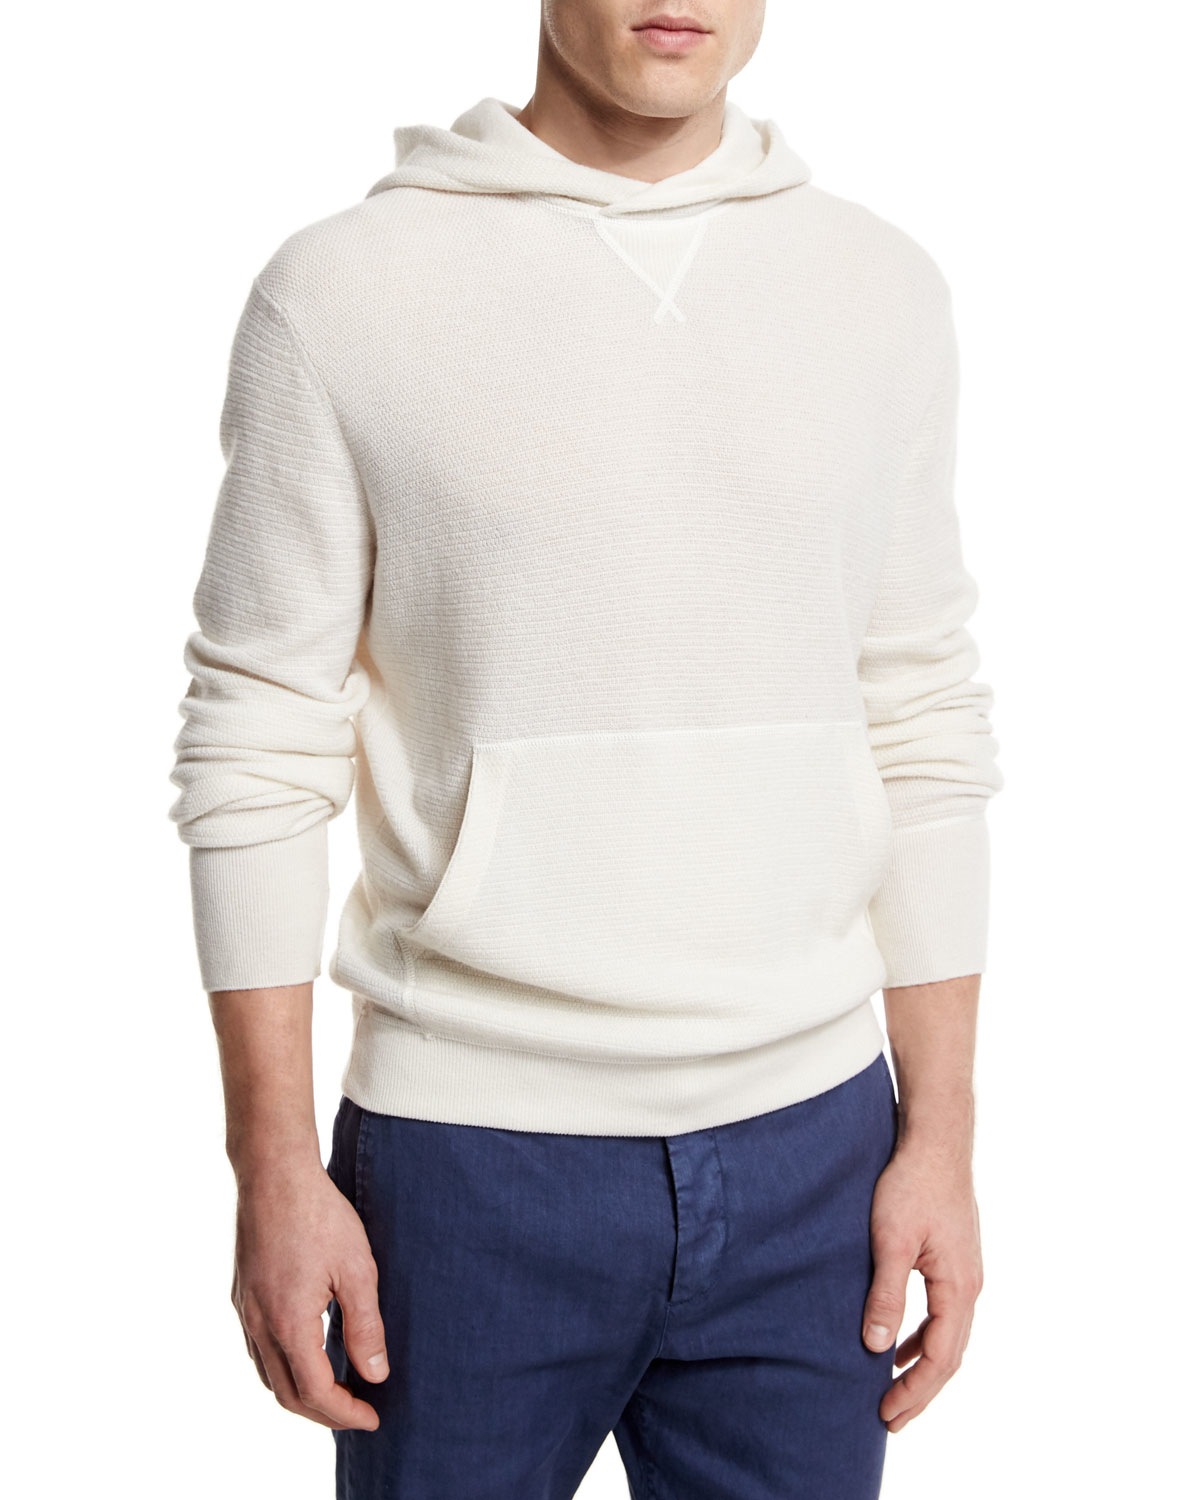 Ermenegildo zegna Cashmere Hooded Pullover Sweater in White for ...